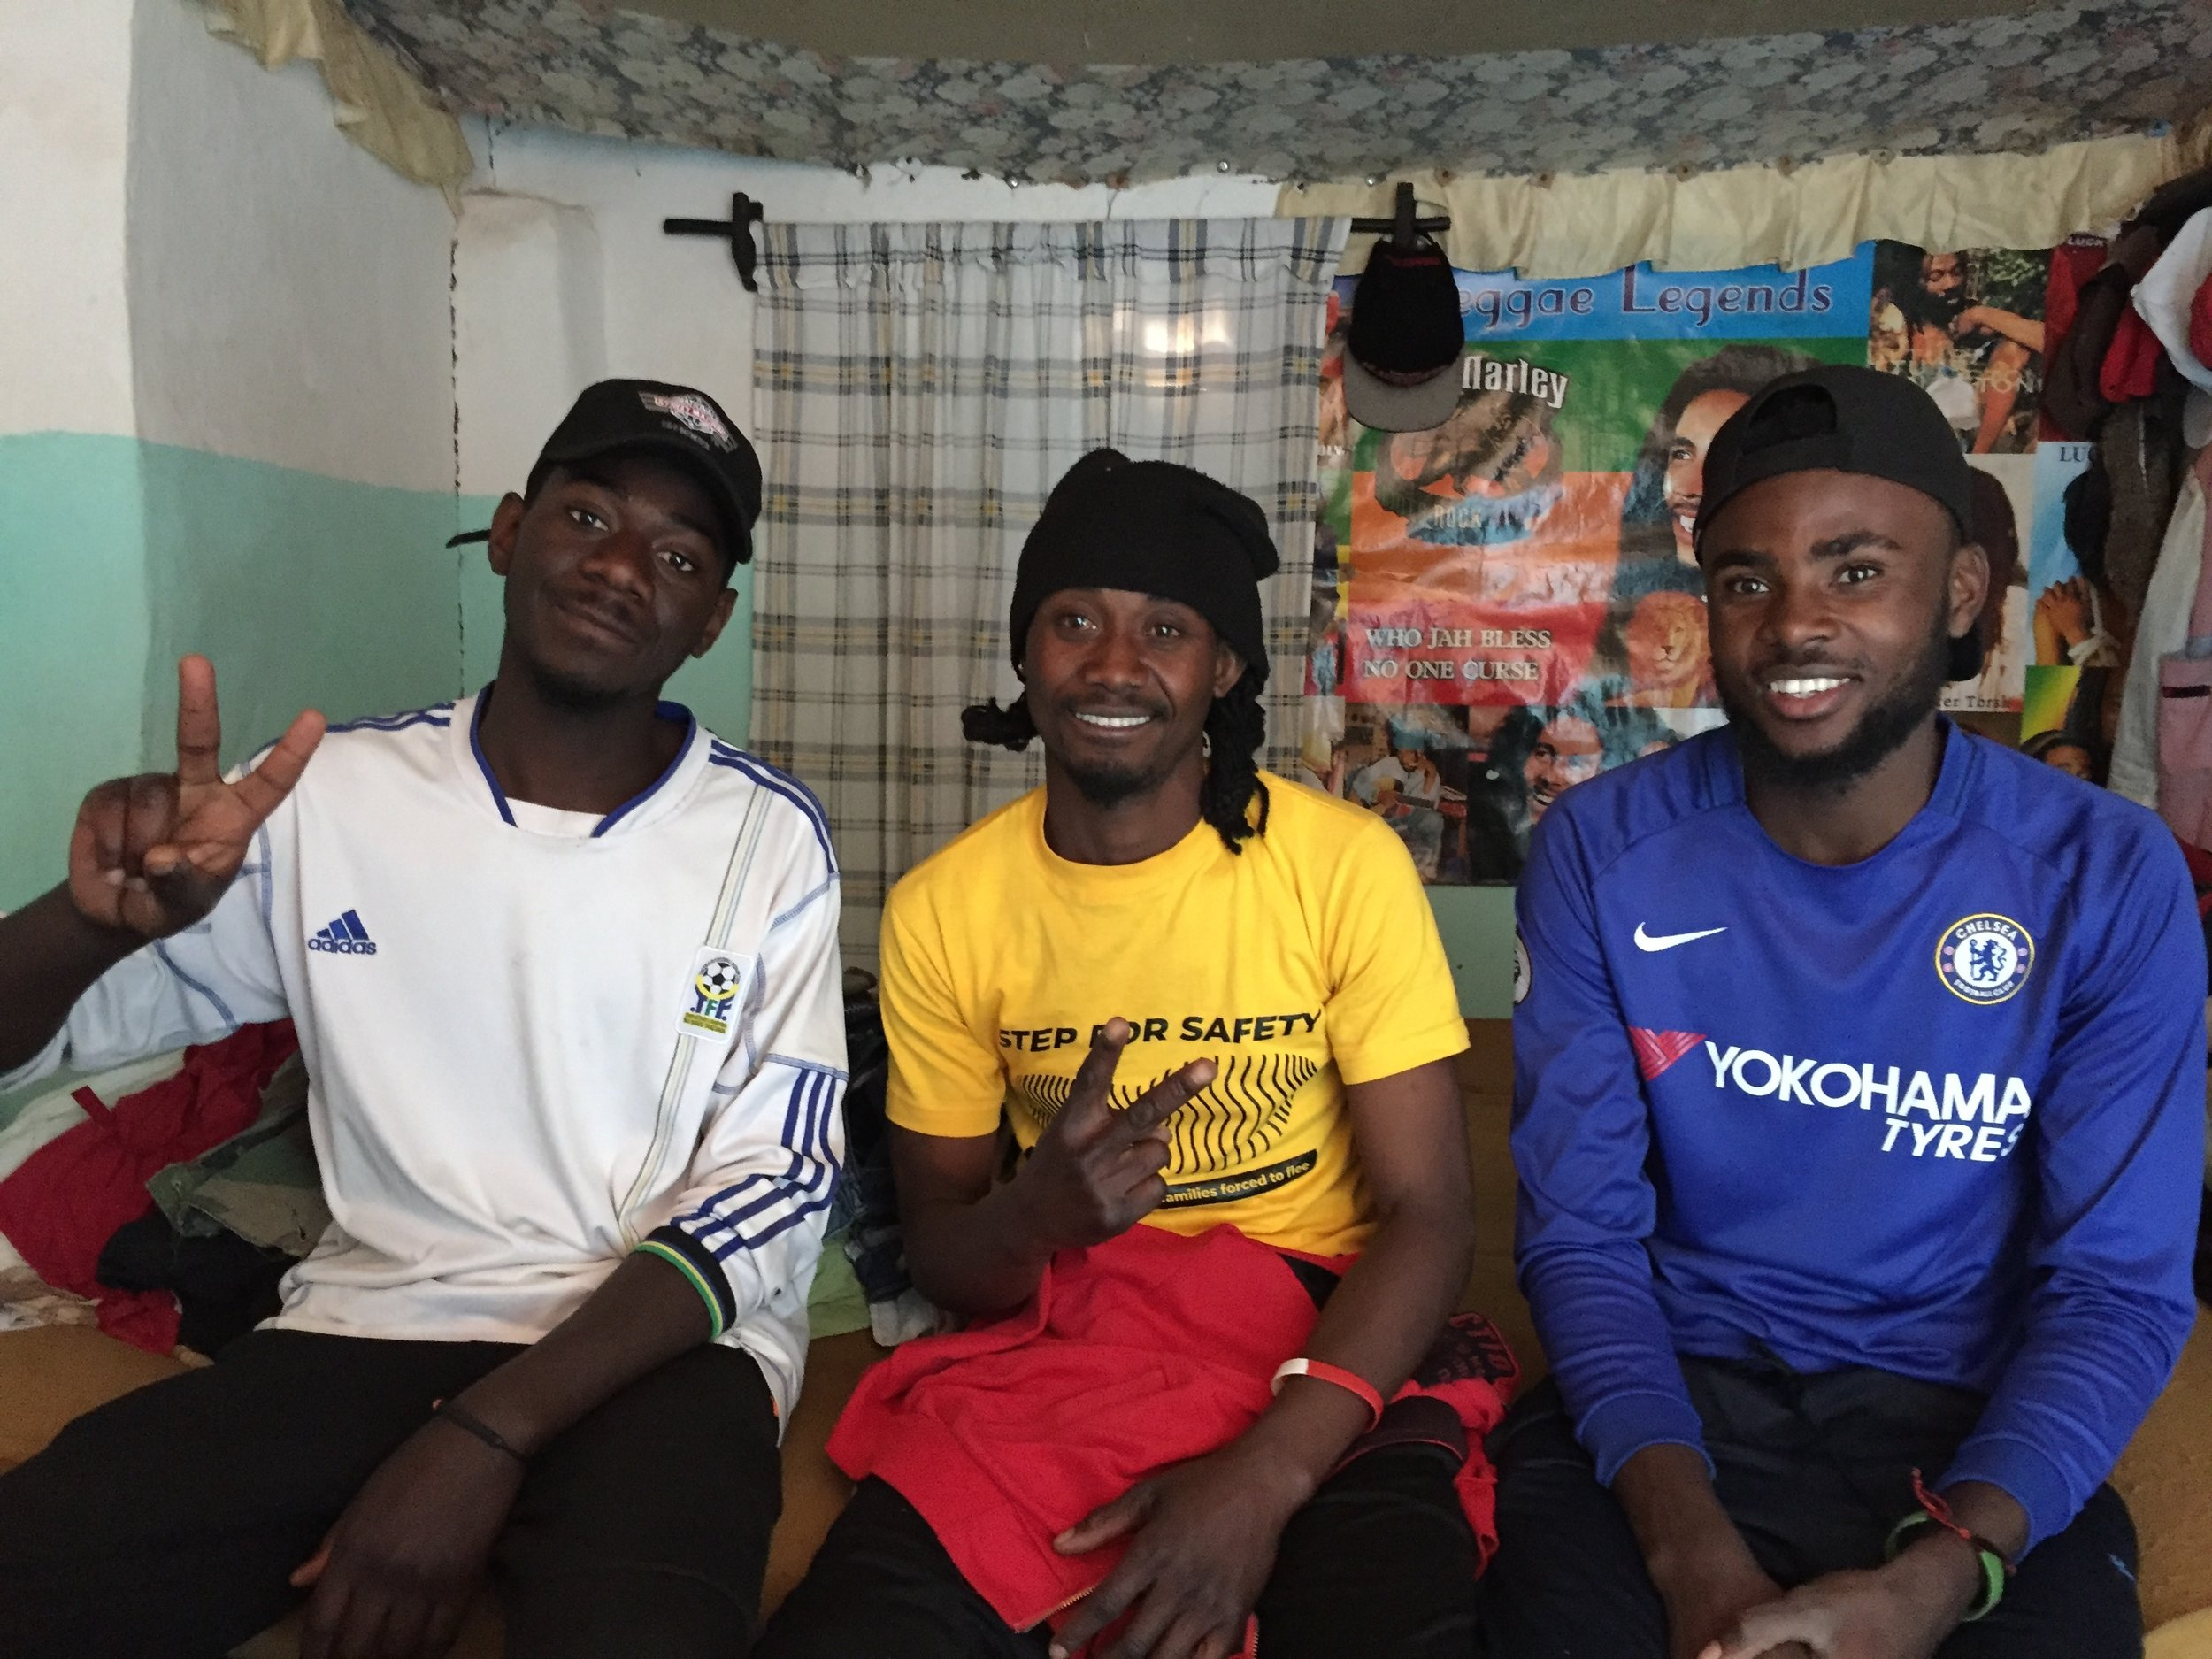 Edmund (left) is from the DRC. He has been in the camp for 14 years and has just finished his diploma. Dan (right), also from the DRC and a refugee at the camp for 14 years. Simple Jay (centre) is the camp's tattooist. He uses a stick & poke method, using a needle and ink that's stored in a syringe for safe keeping. Customers come to him to have mostly animals and names of loved ones tattooed. He is a Rasta and fashioned a key out of a stick for his hut's door—he called it a Rasta key. He is also in the camp's dance troop.